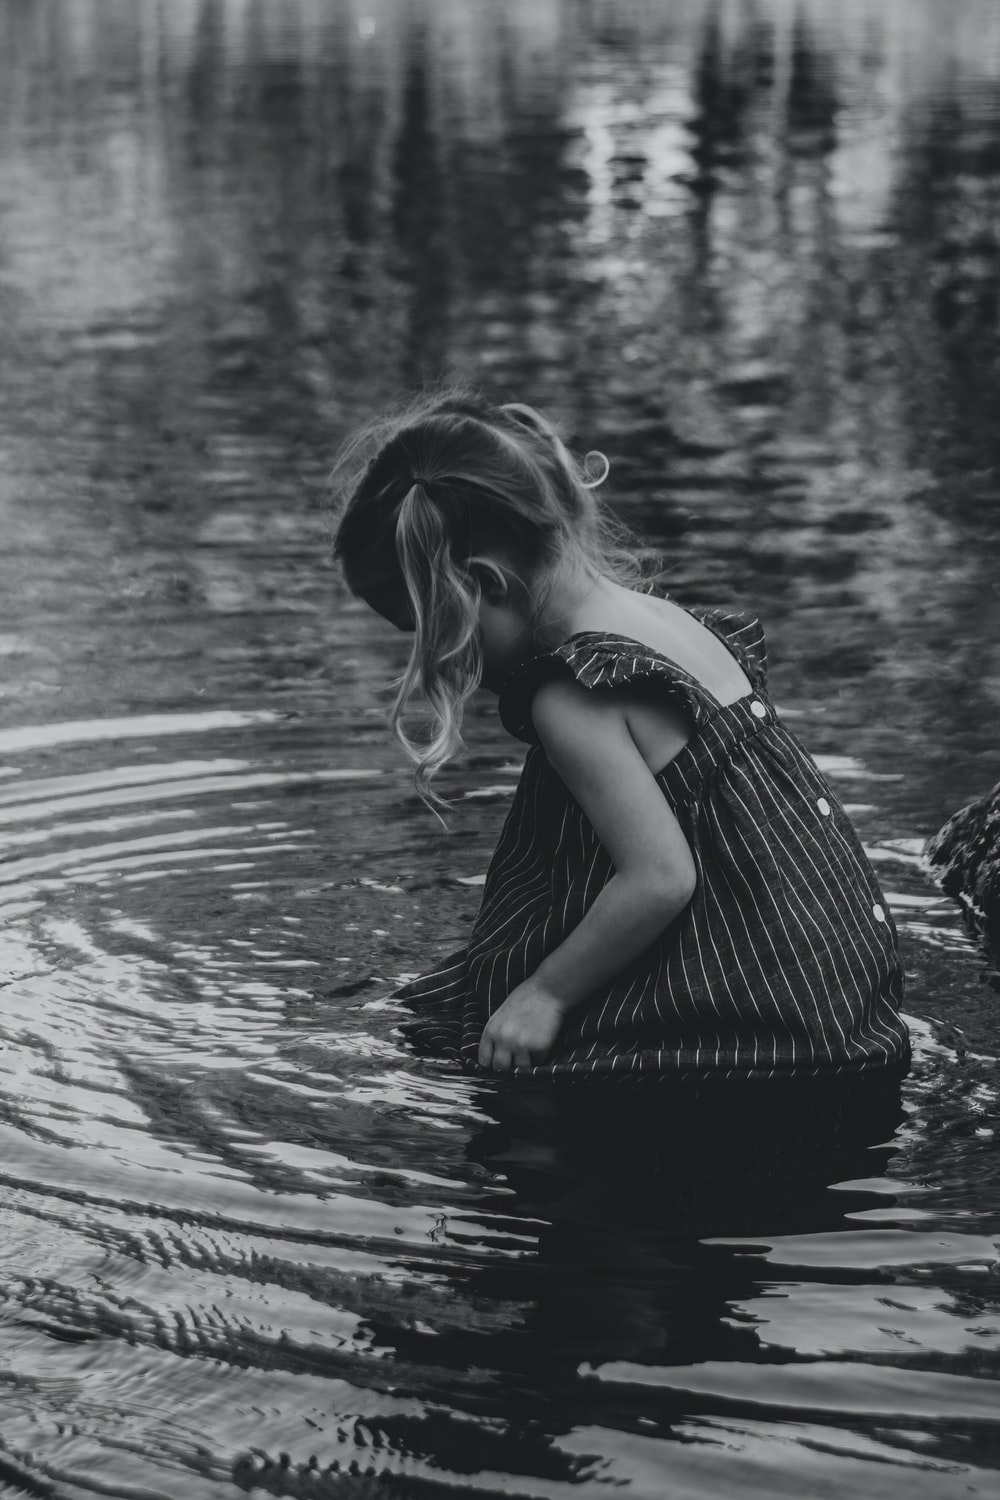 grayscale photo of woman in black and white stripe dress on water